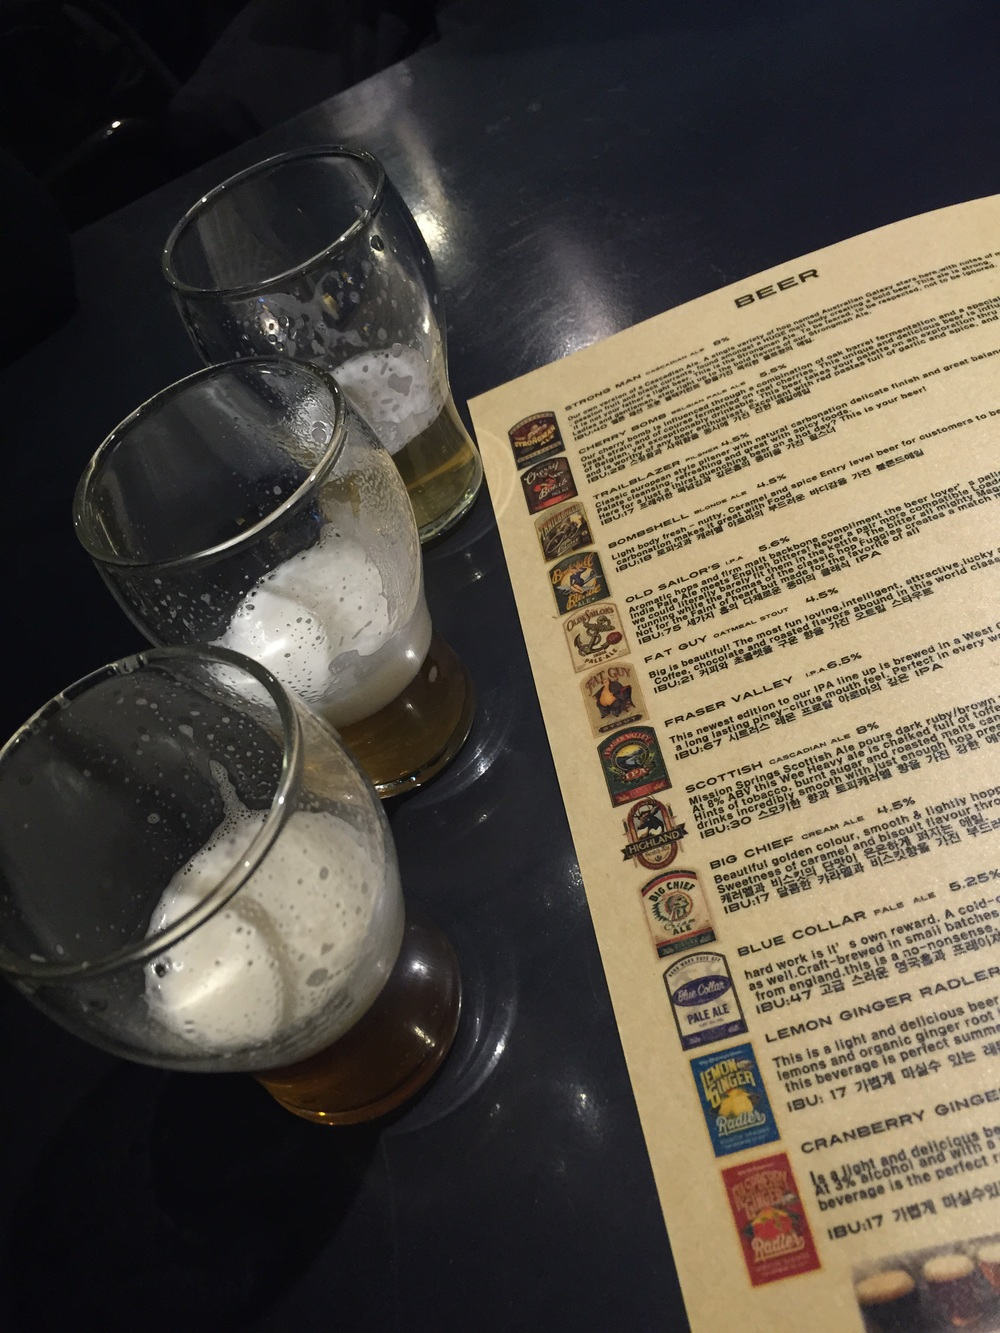 We weren't sure which beer to get, so they were nice enough to bring us out 3 samples to taste. We tried the Trailblazer, Bombshell and Old Sailor's.